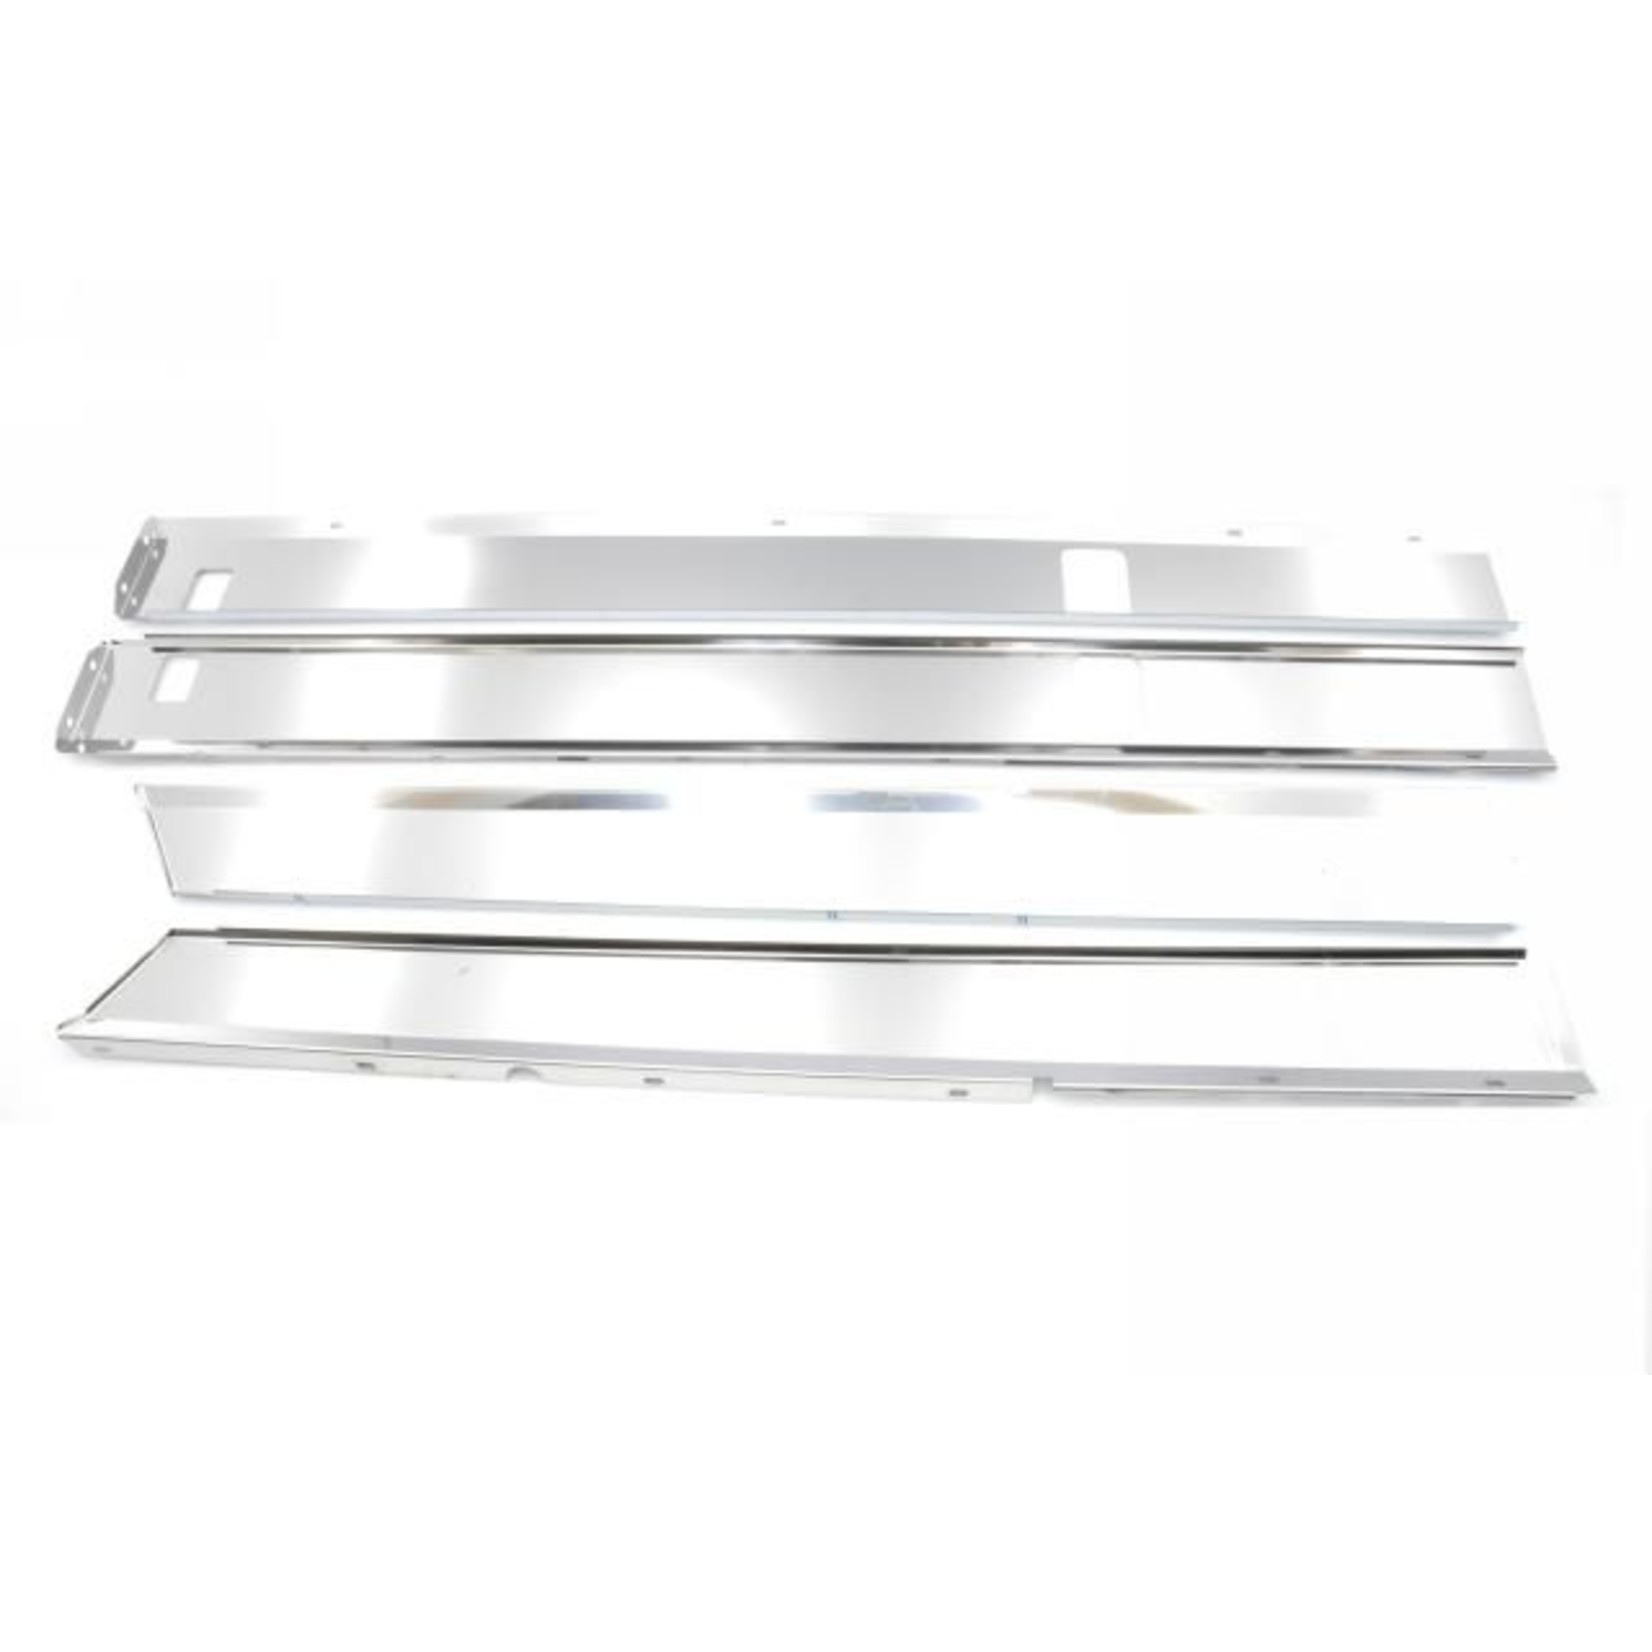 Body panels Stainless steel SM Nr Org: 5408624